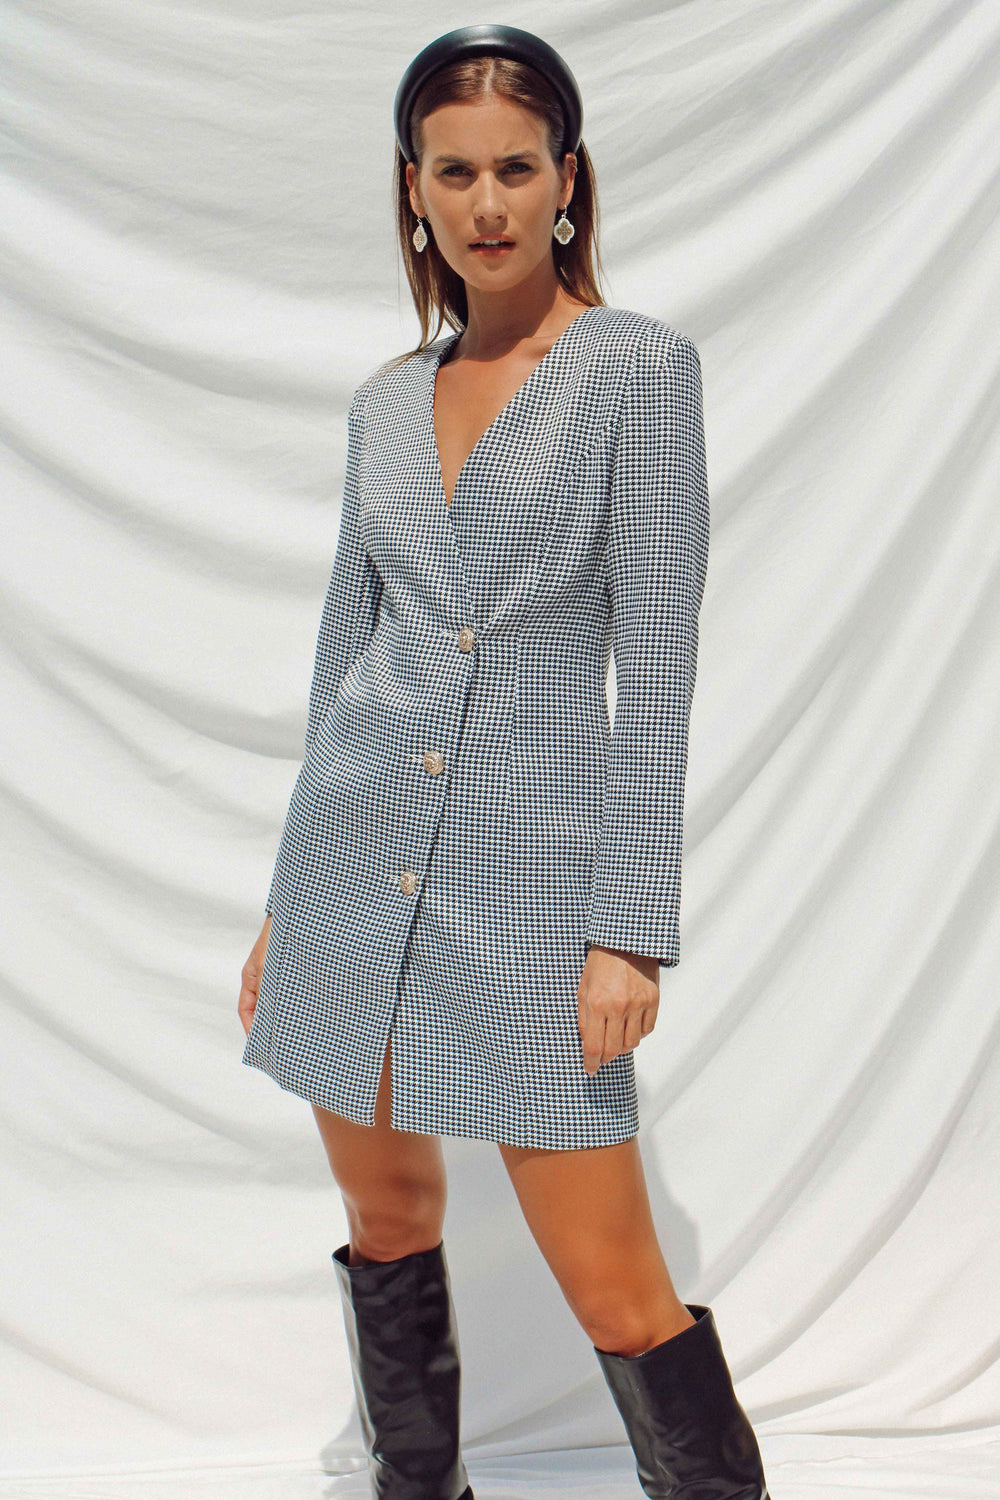 BLAKELY BLAZER DRESS | Women's Online Shopping | CHICLEFRIQUE